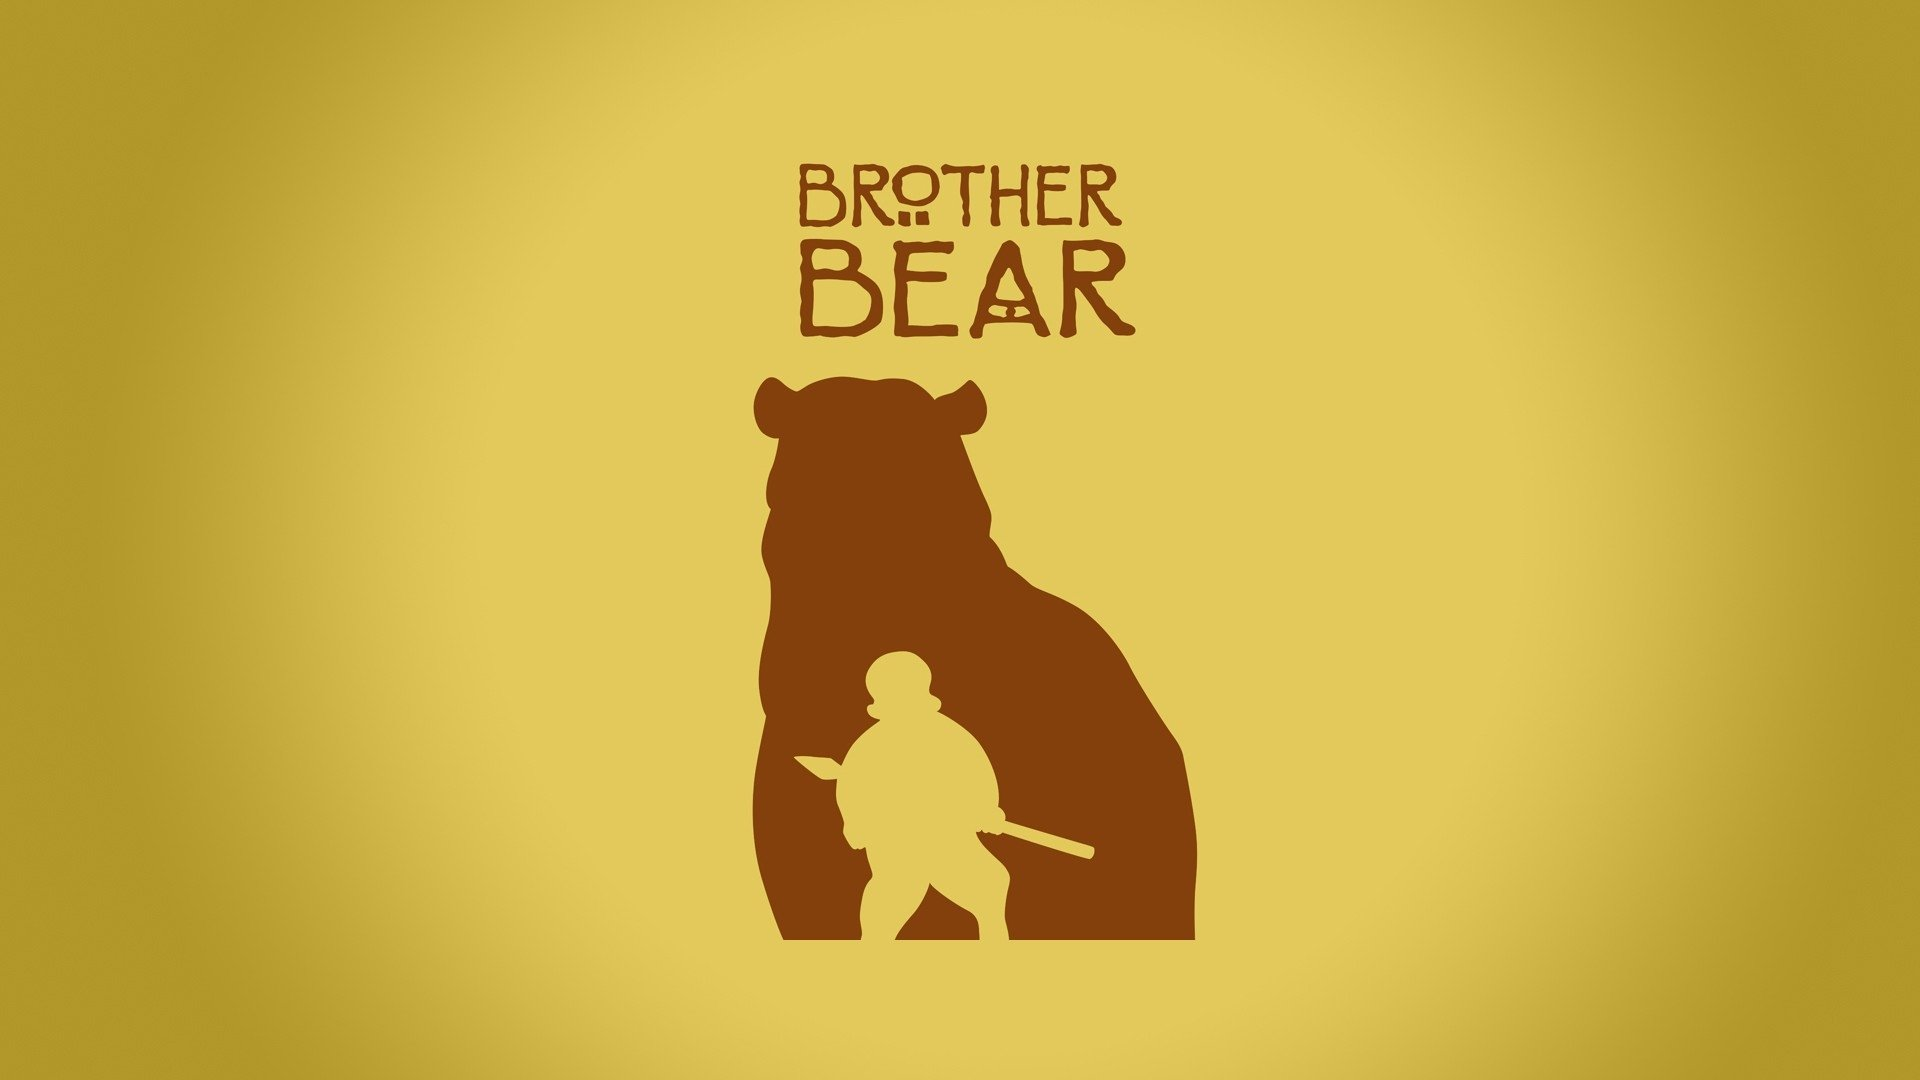 brother bear movie logo wallpaper 64206